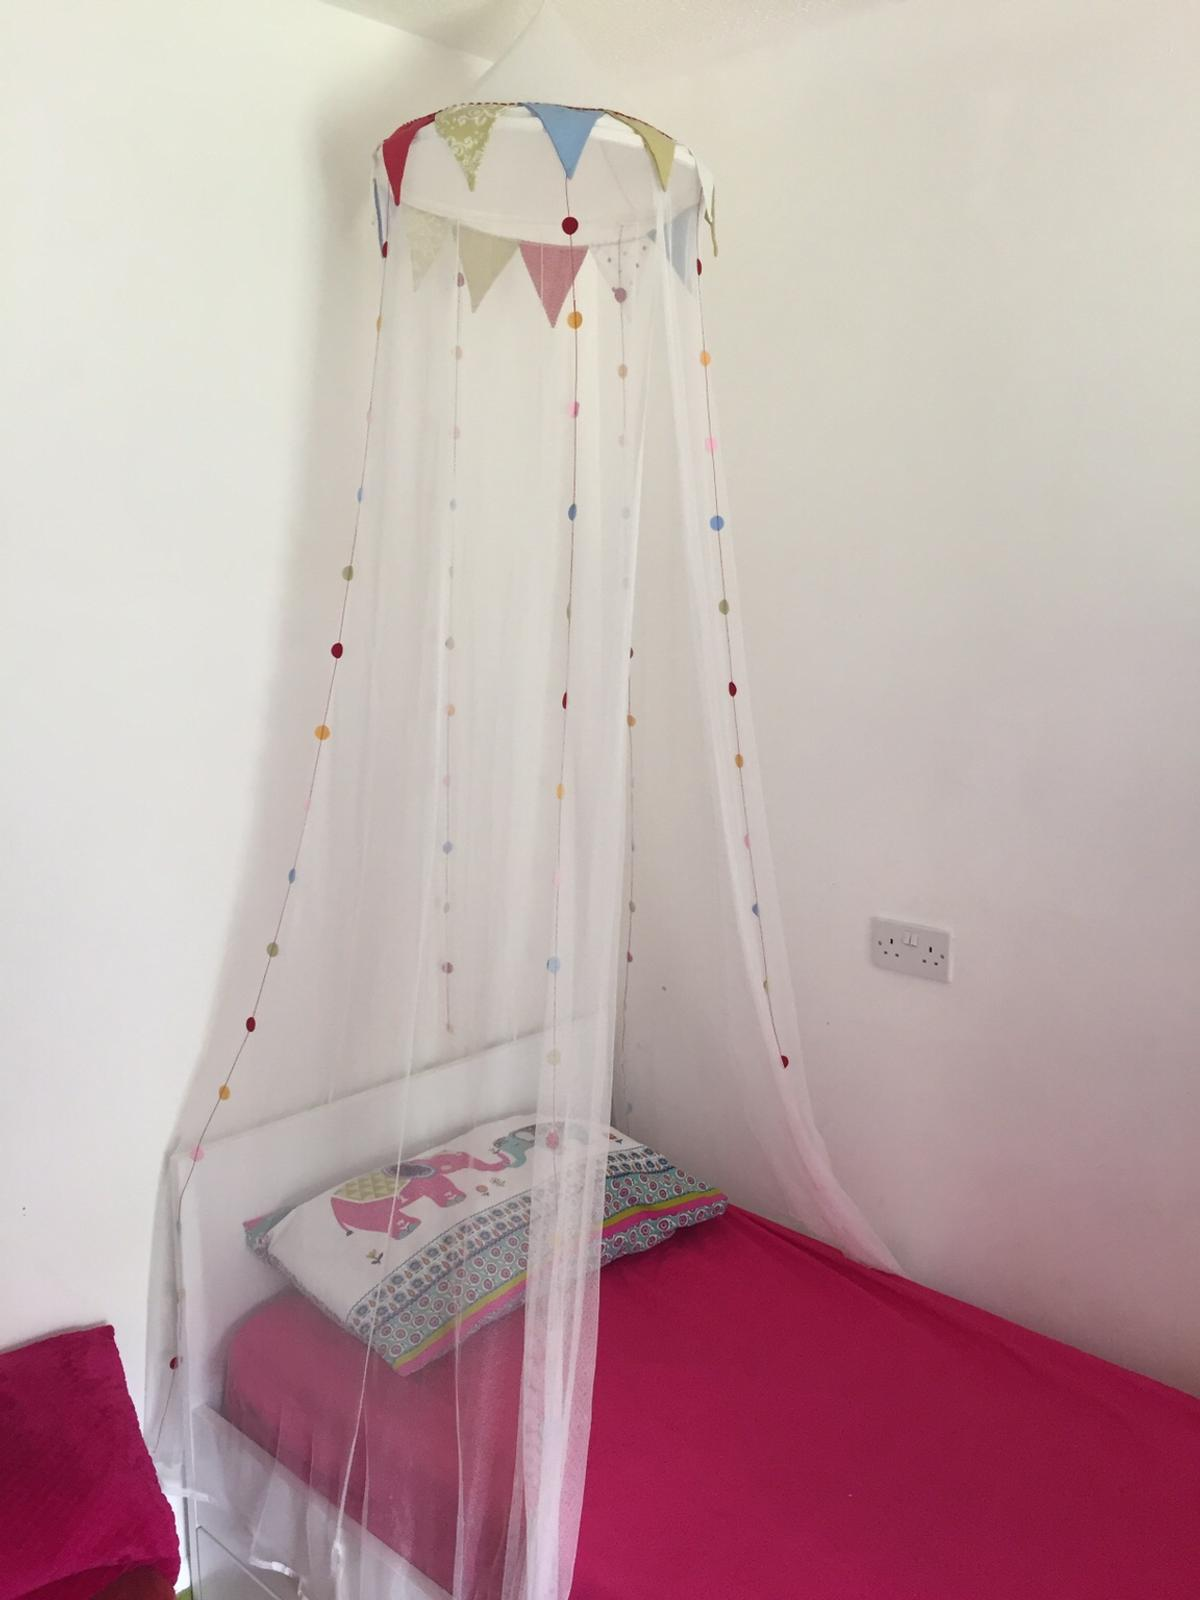 Ikea Bed Canopy Excellent Condition In Se27 London For 5 00 For Sale Shpock